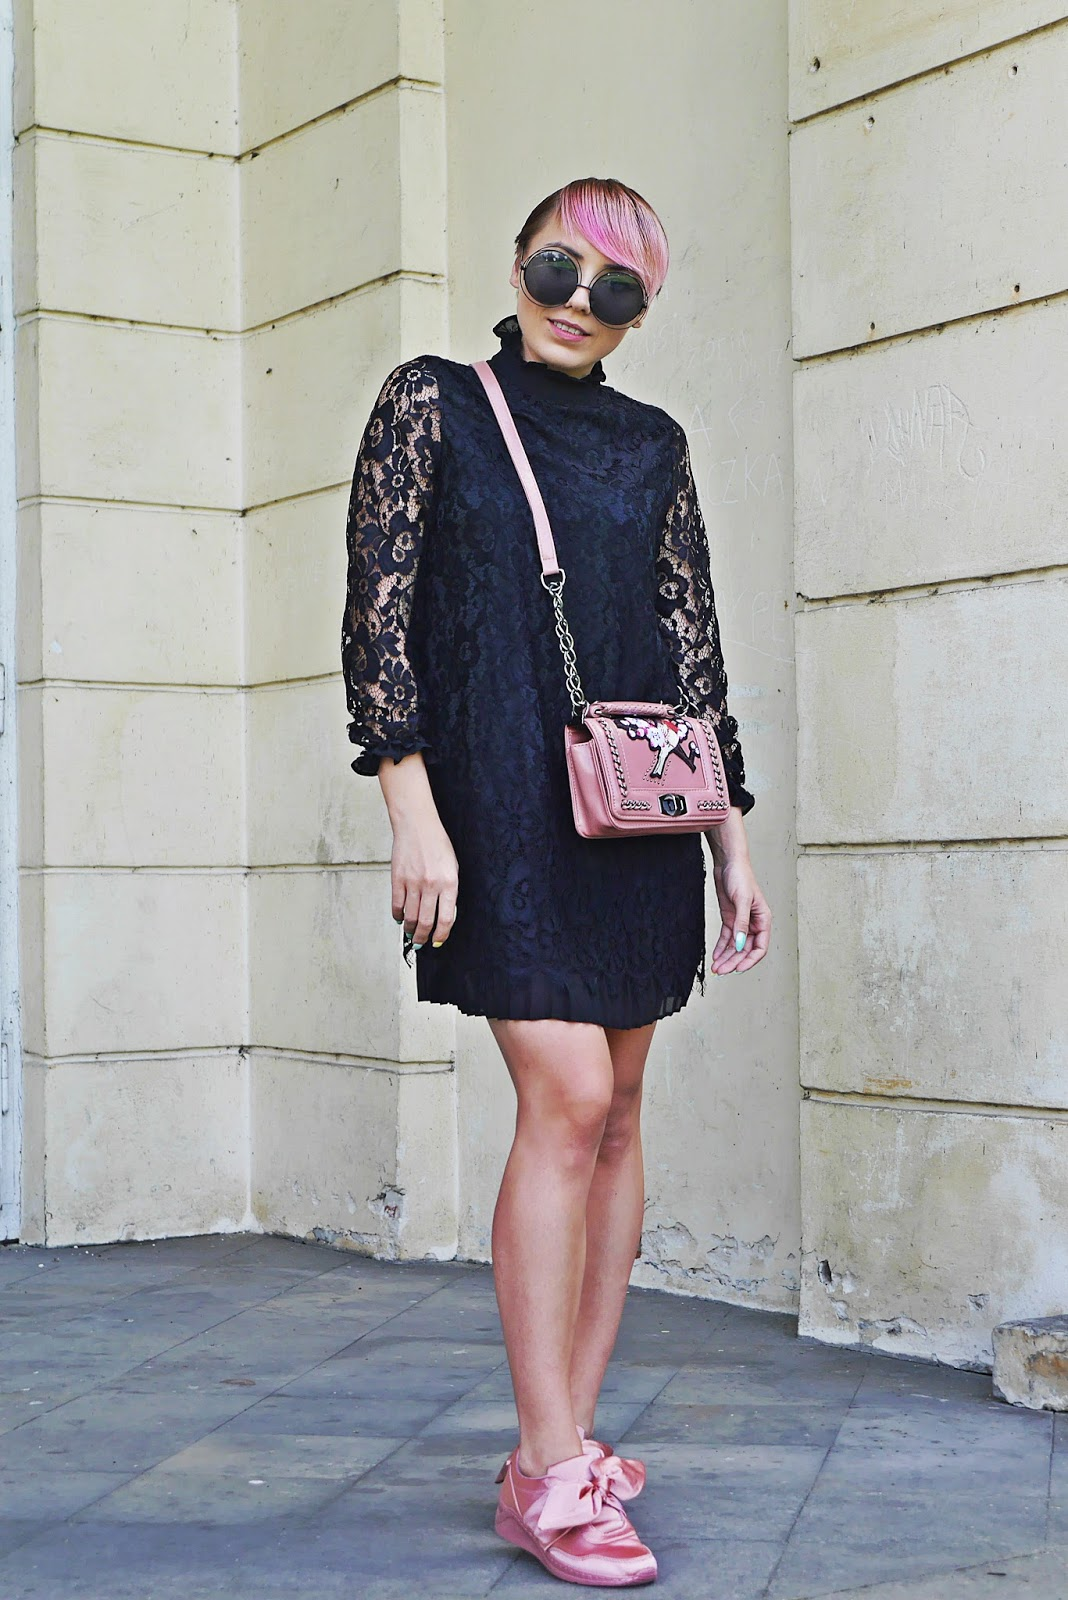 renee_shoes_pink_lace_dress_embroidery_bag_karyn_blog_modowy_150817a